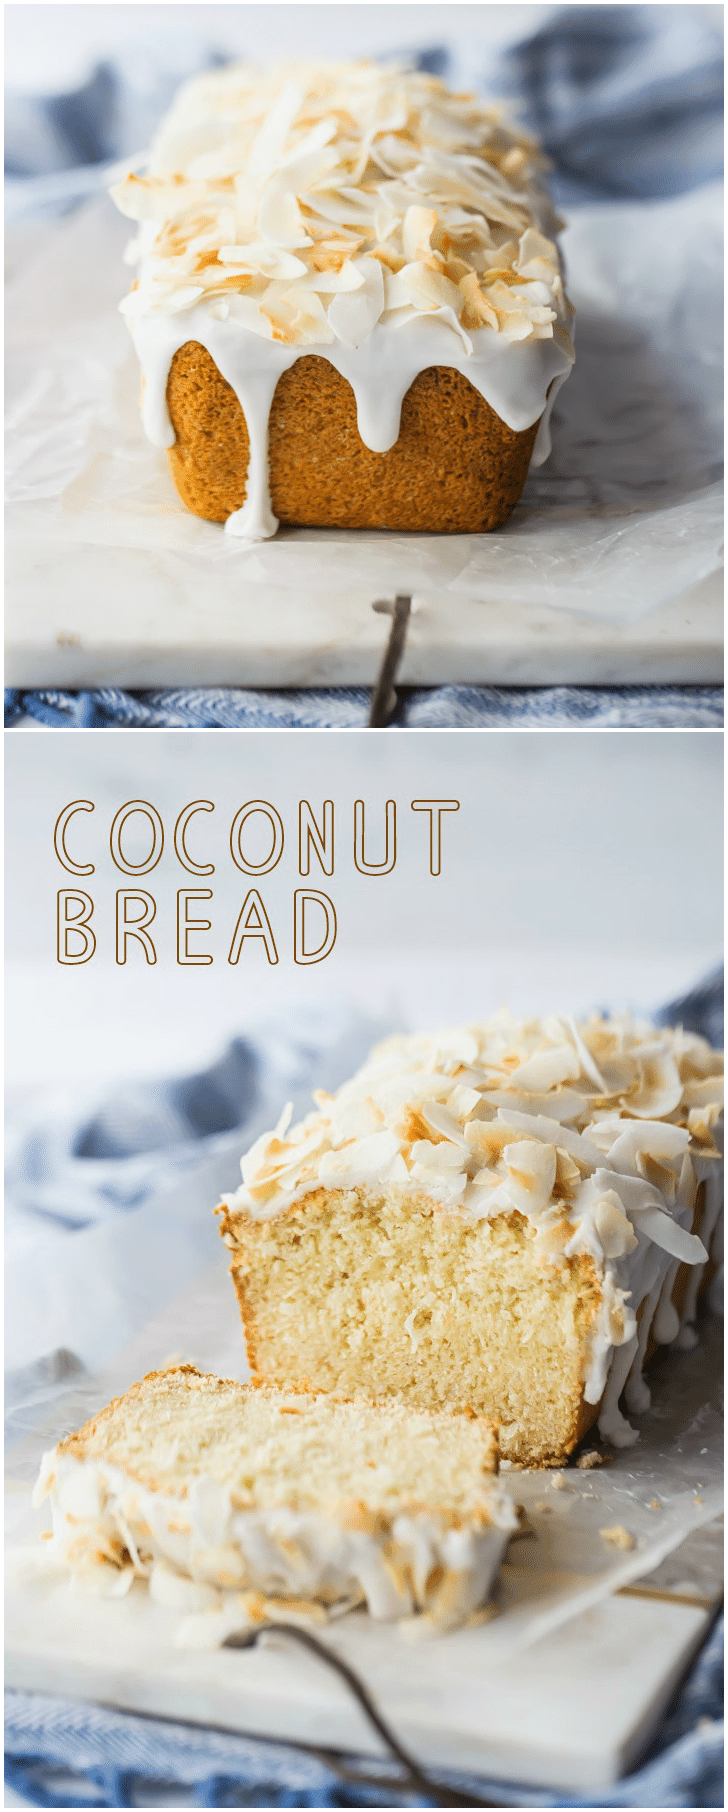 This coconut bread was a breeze to make, and it came out moist, soft, and just sweet enough.  The glaze and the toasted coconut topping were the perfect added touch! #coconut #bread #coconutbread #recipe #easy #toasted #cake #loaf #quickbread #best #sweet #moist #withglaze #simple #shredded #Easter #breakfast #brunch #snack